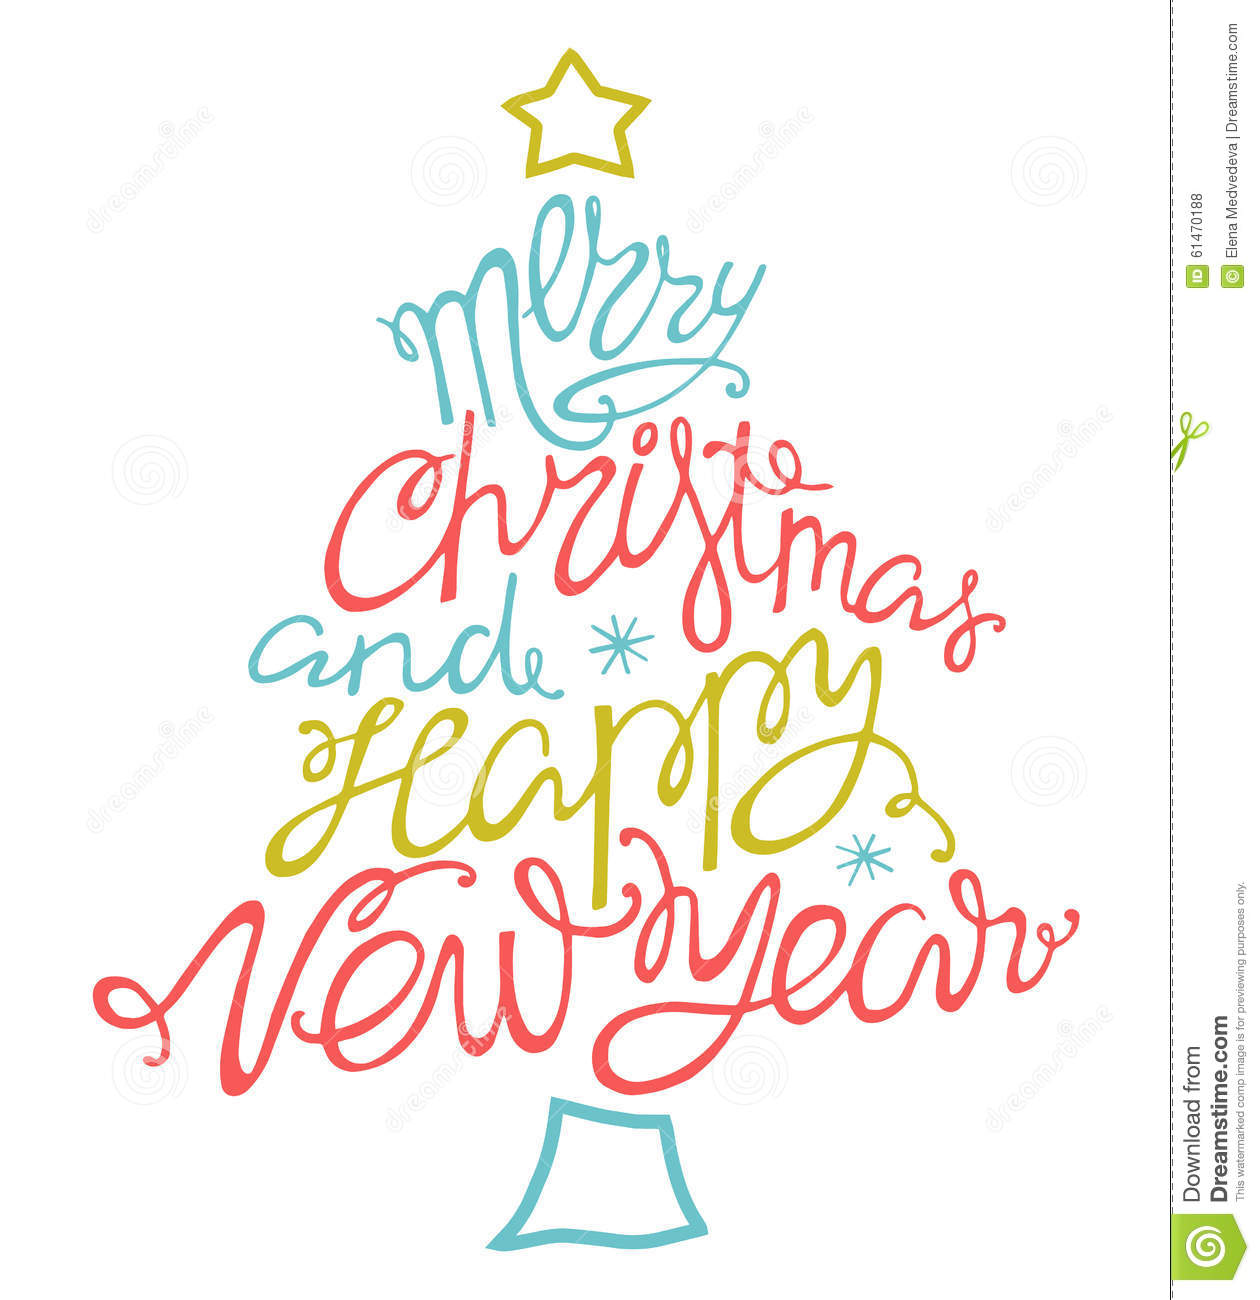 merry christmas and happy new yearhanddrawn